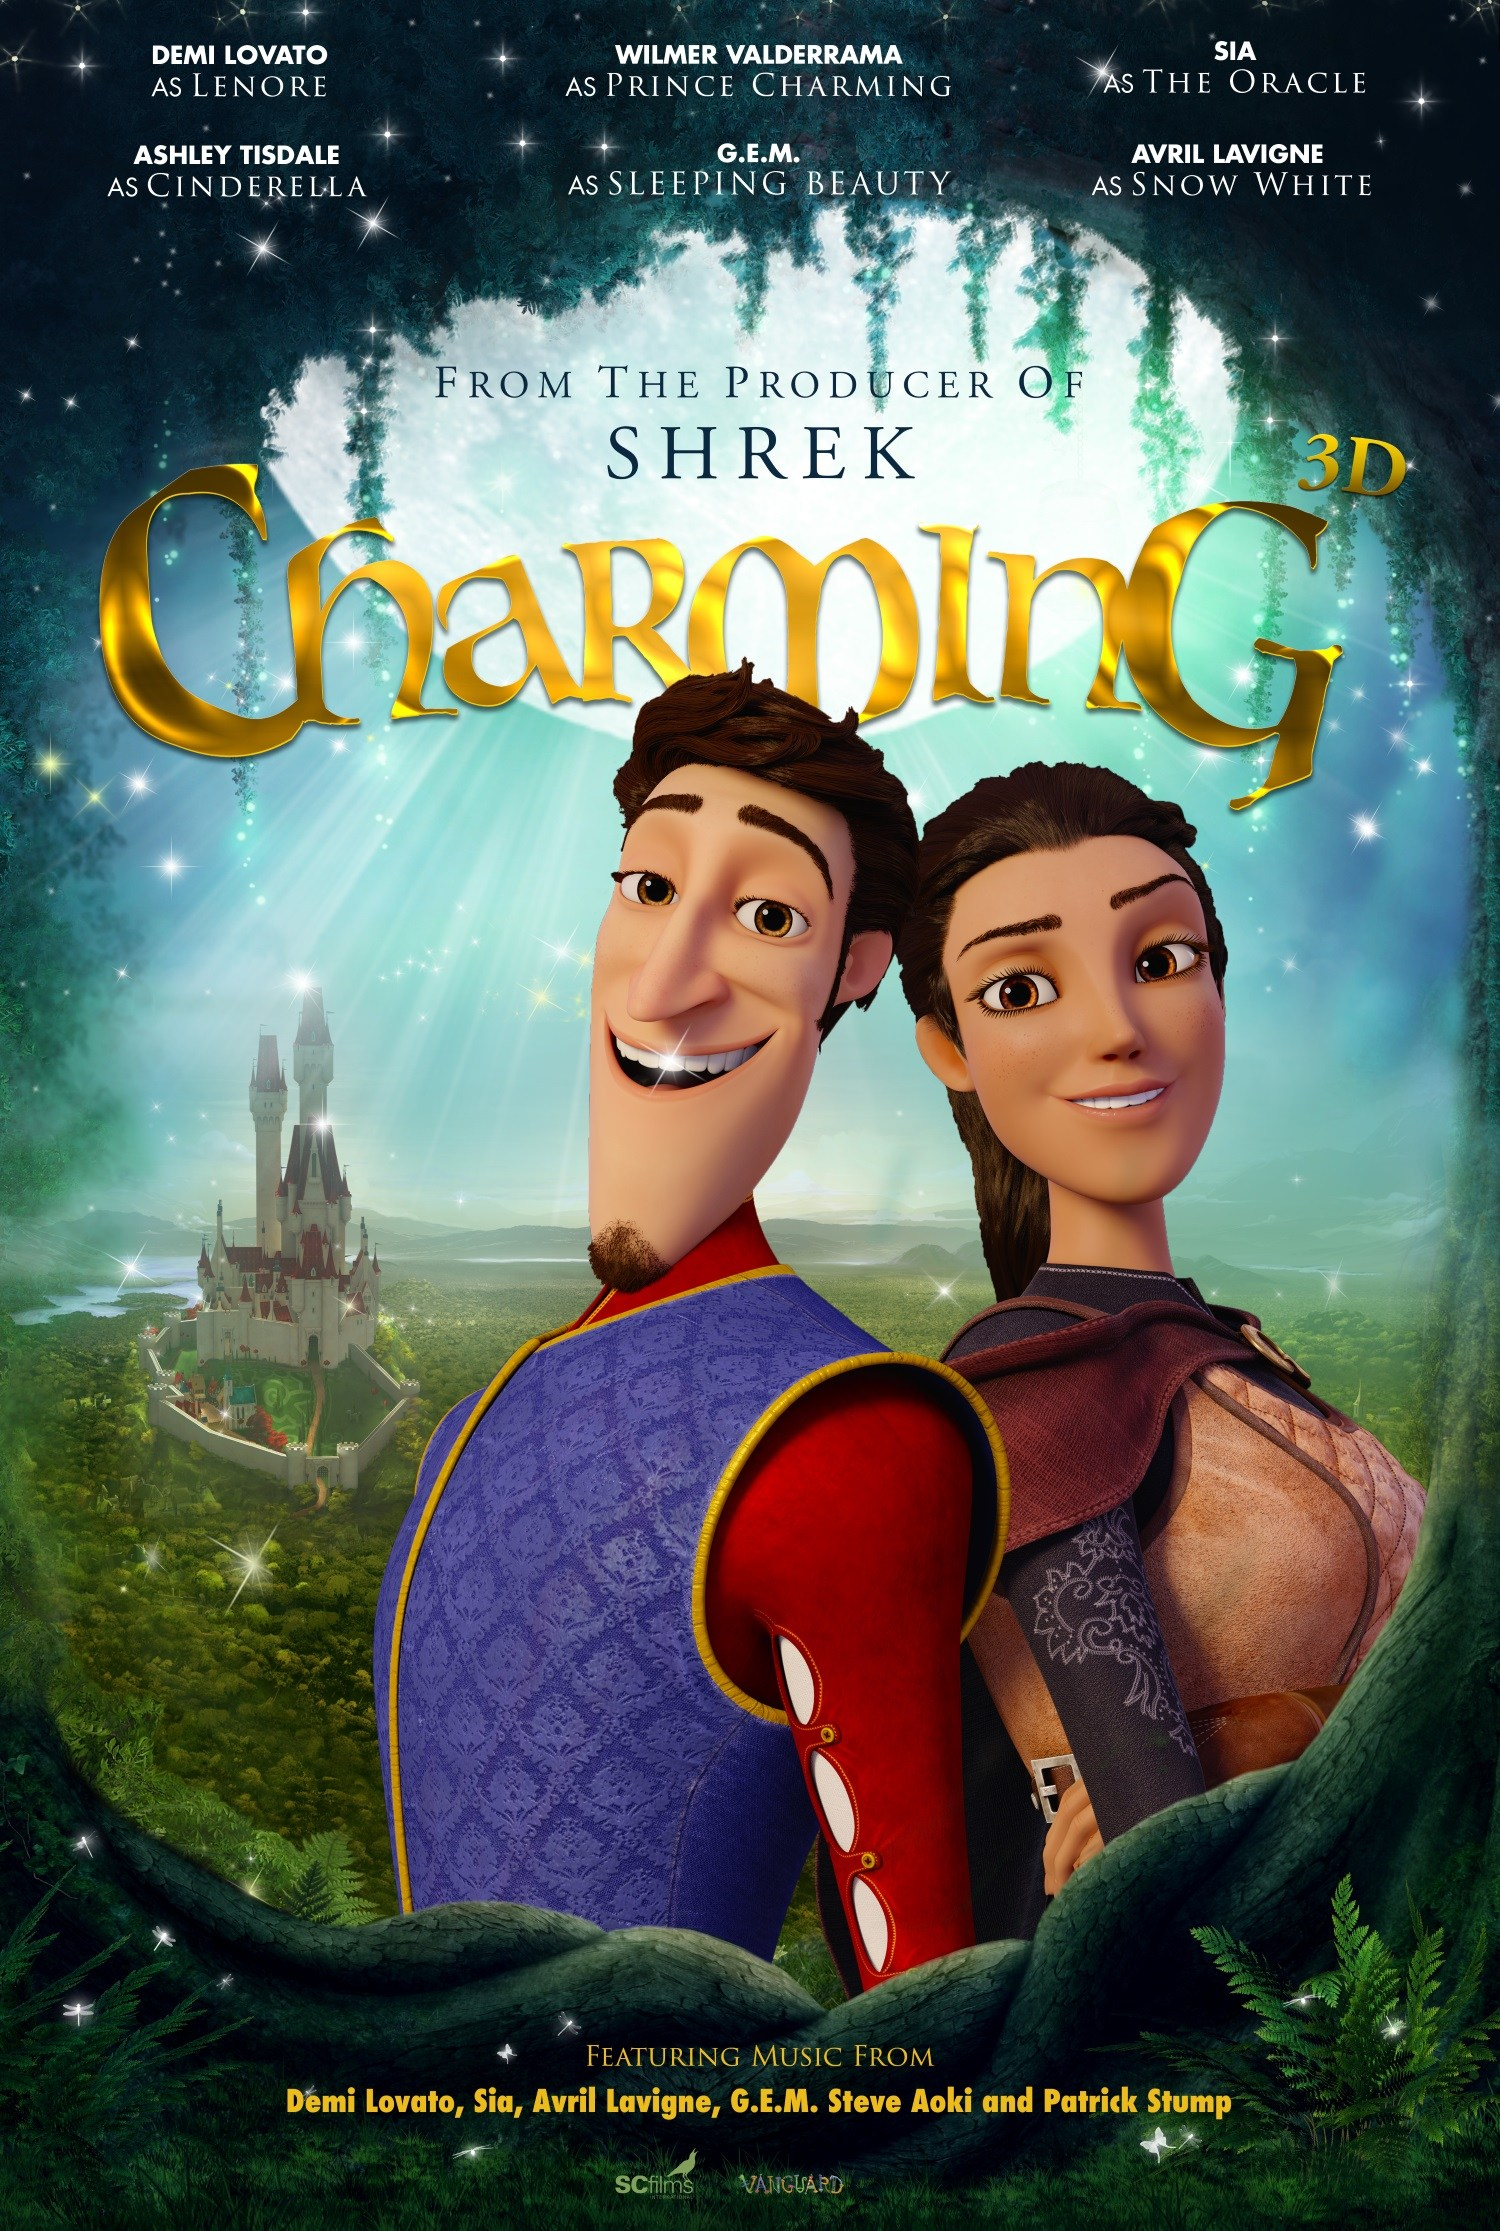 Charming-movie-Poster-1.jpg